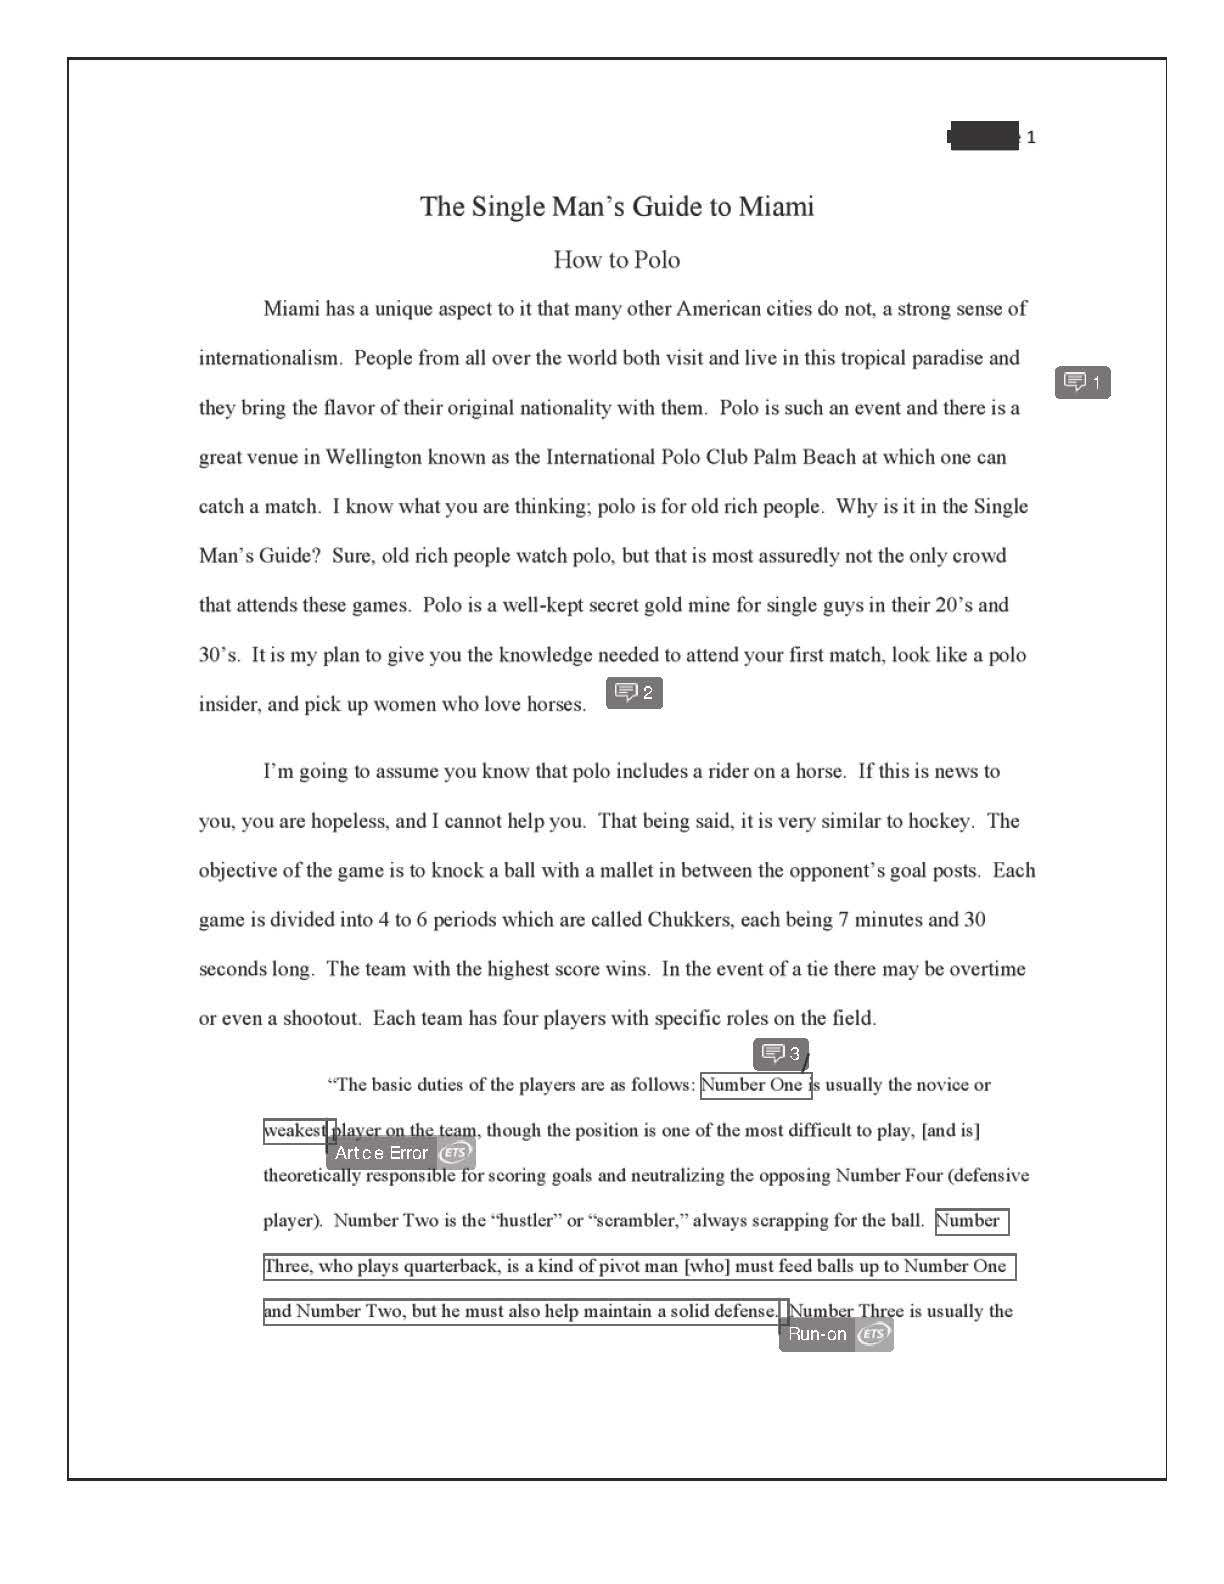 006 Example Of An Essay About Education Examples Informative Essays Writing Utopia Instruction Final How To Polo Redacted P Quiz Prewriting Quizlet Dreaded Write A Introduction Good Thesis For Full